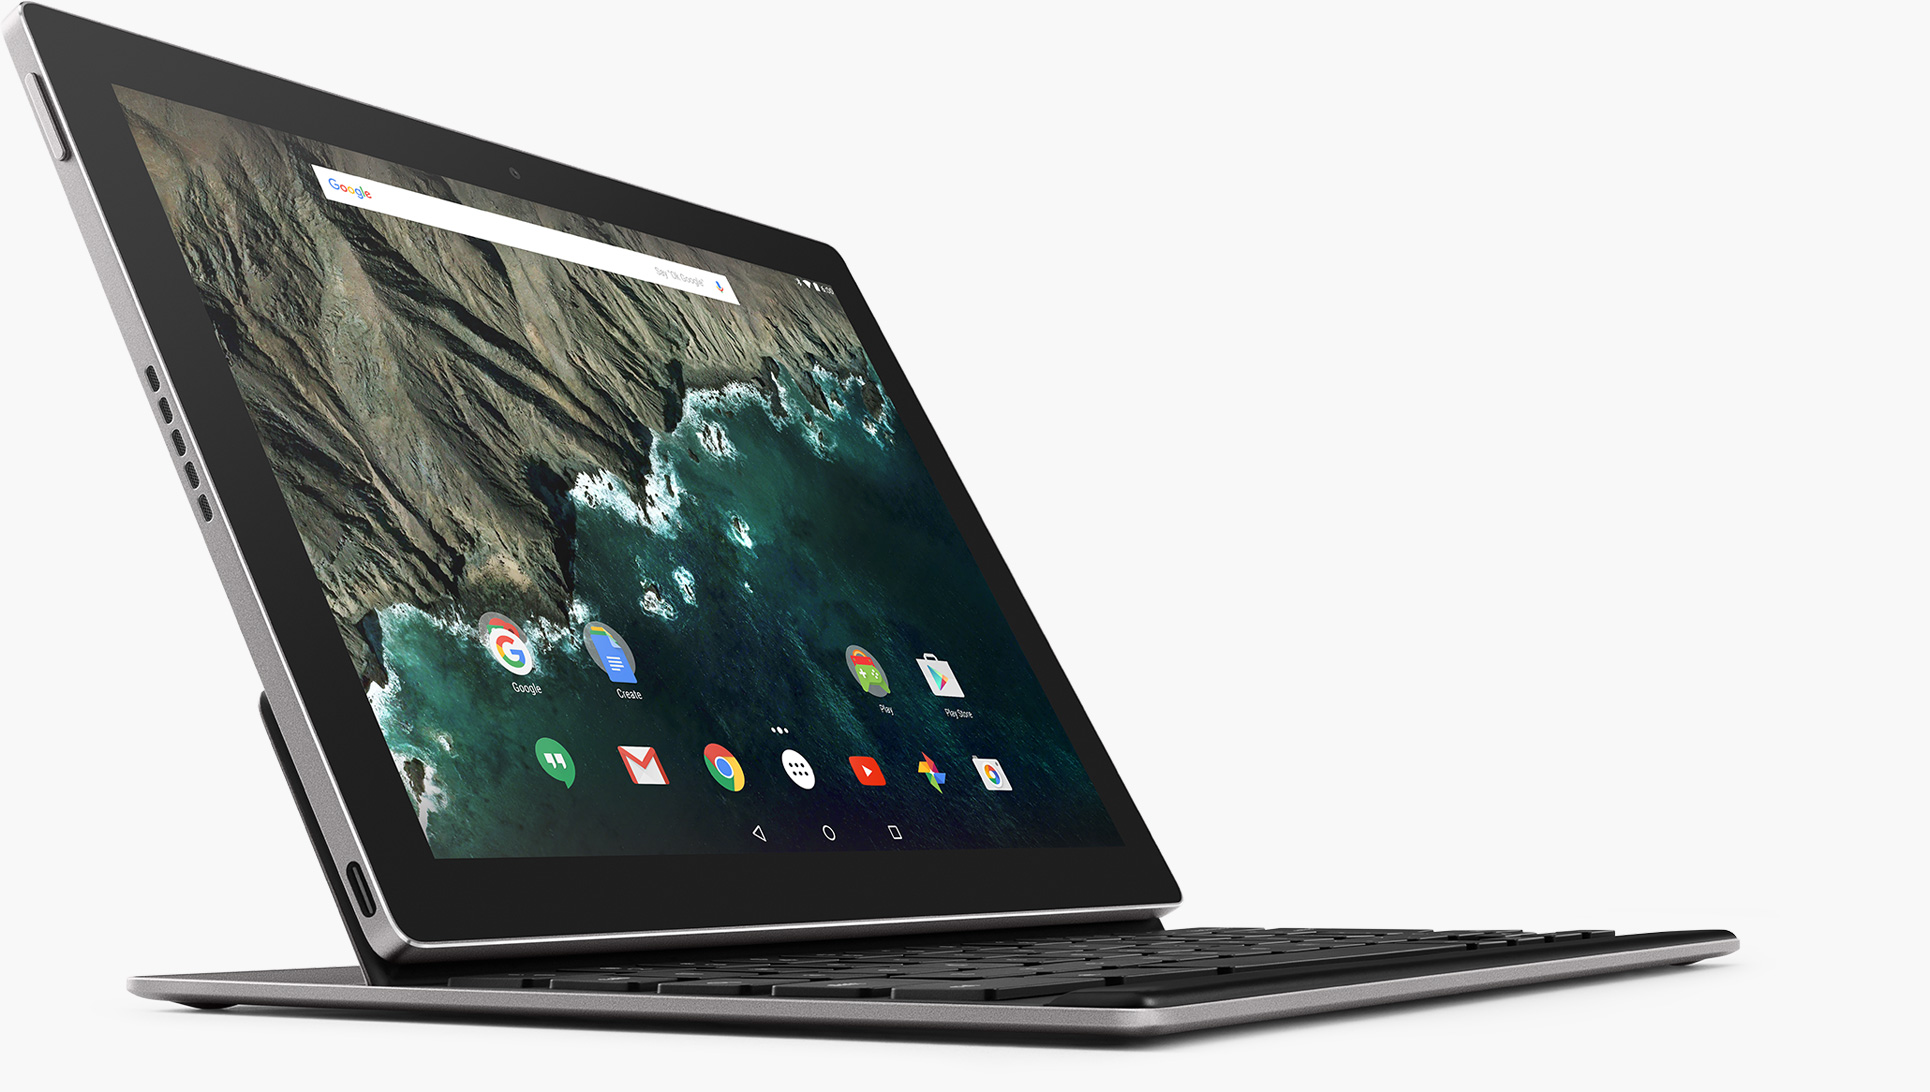 Google Pixel C Tablet Launching Next Week, Rumor Says